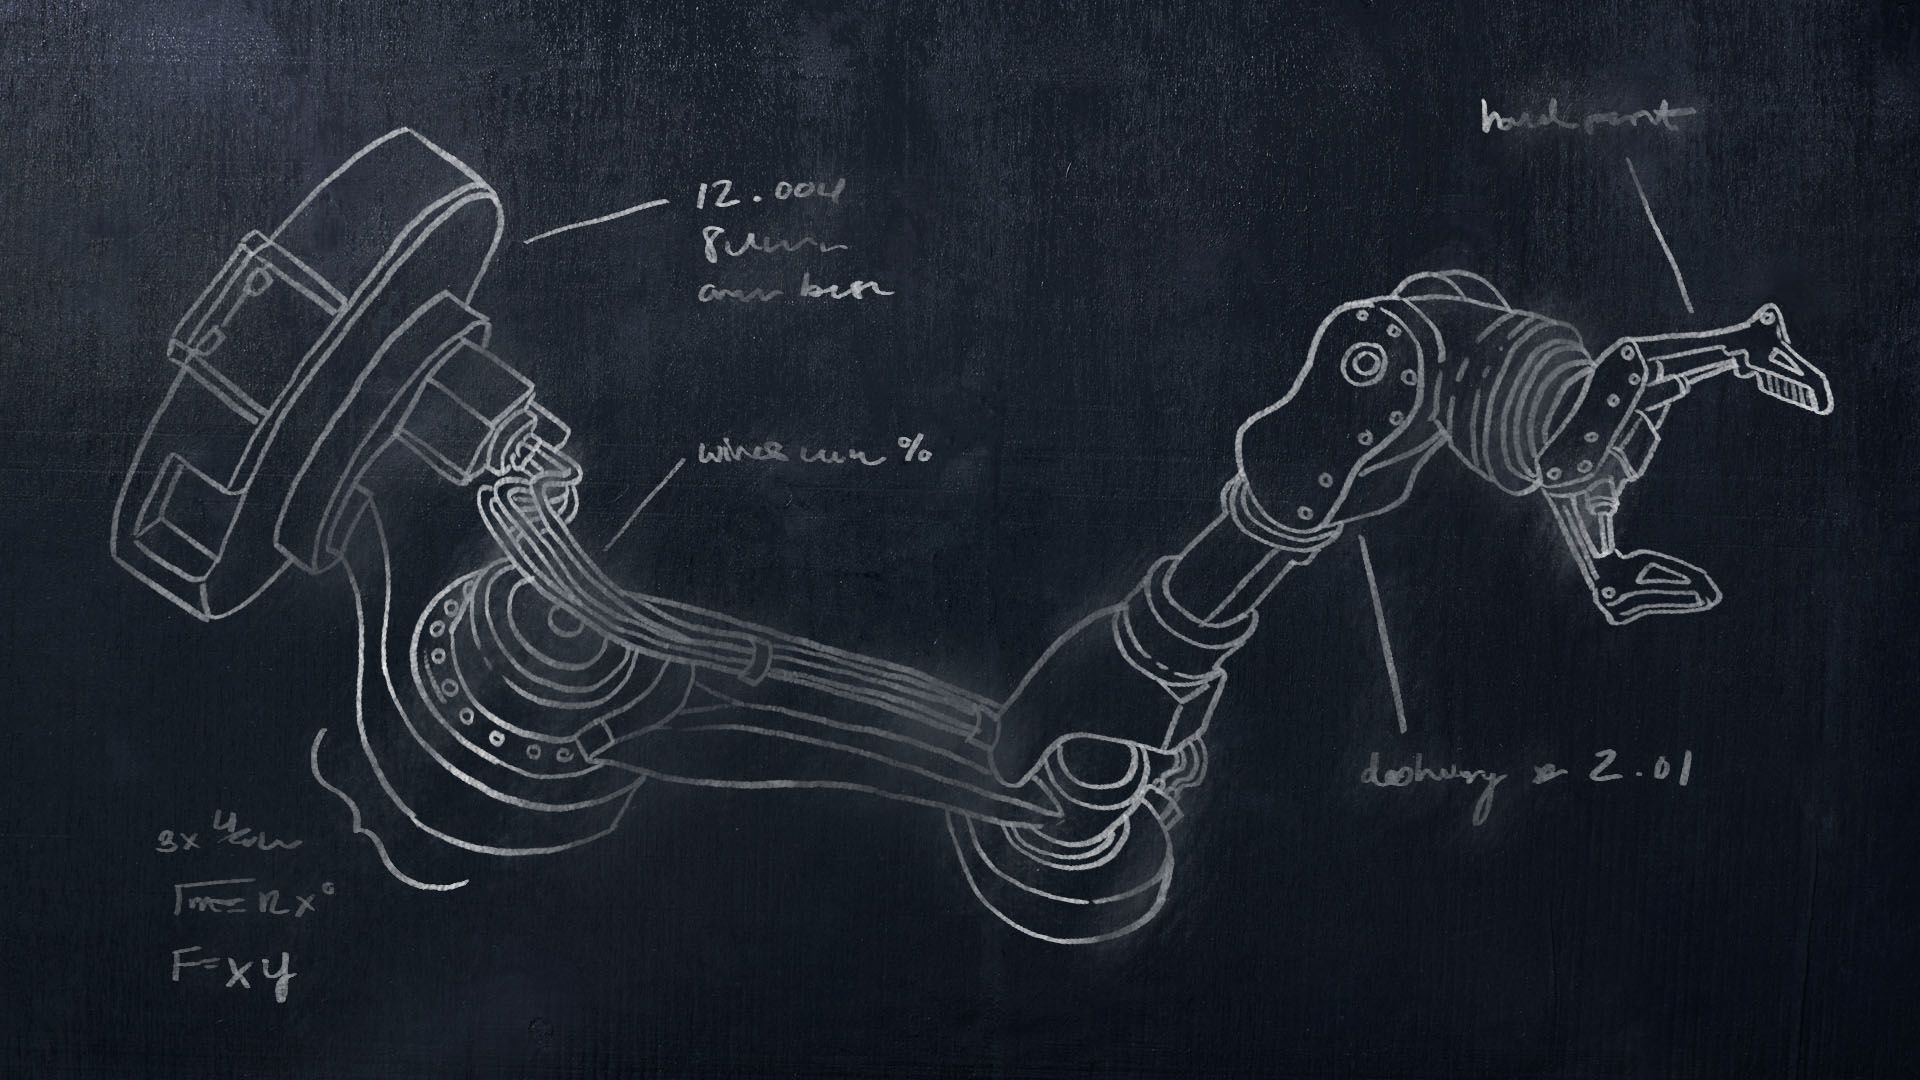 Illustration of a robot hand diagram on a chalkboard